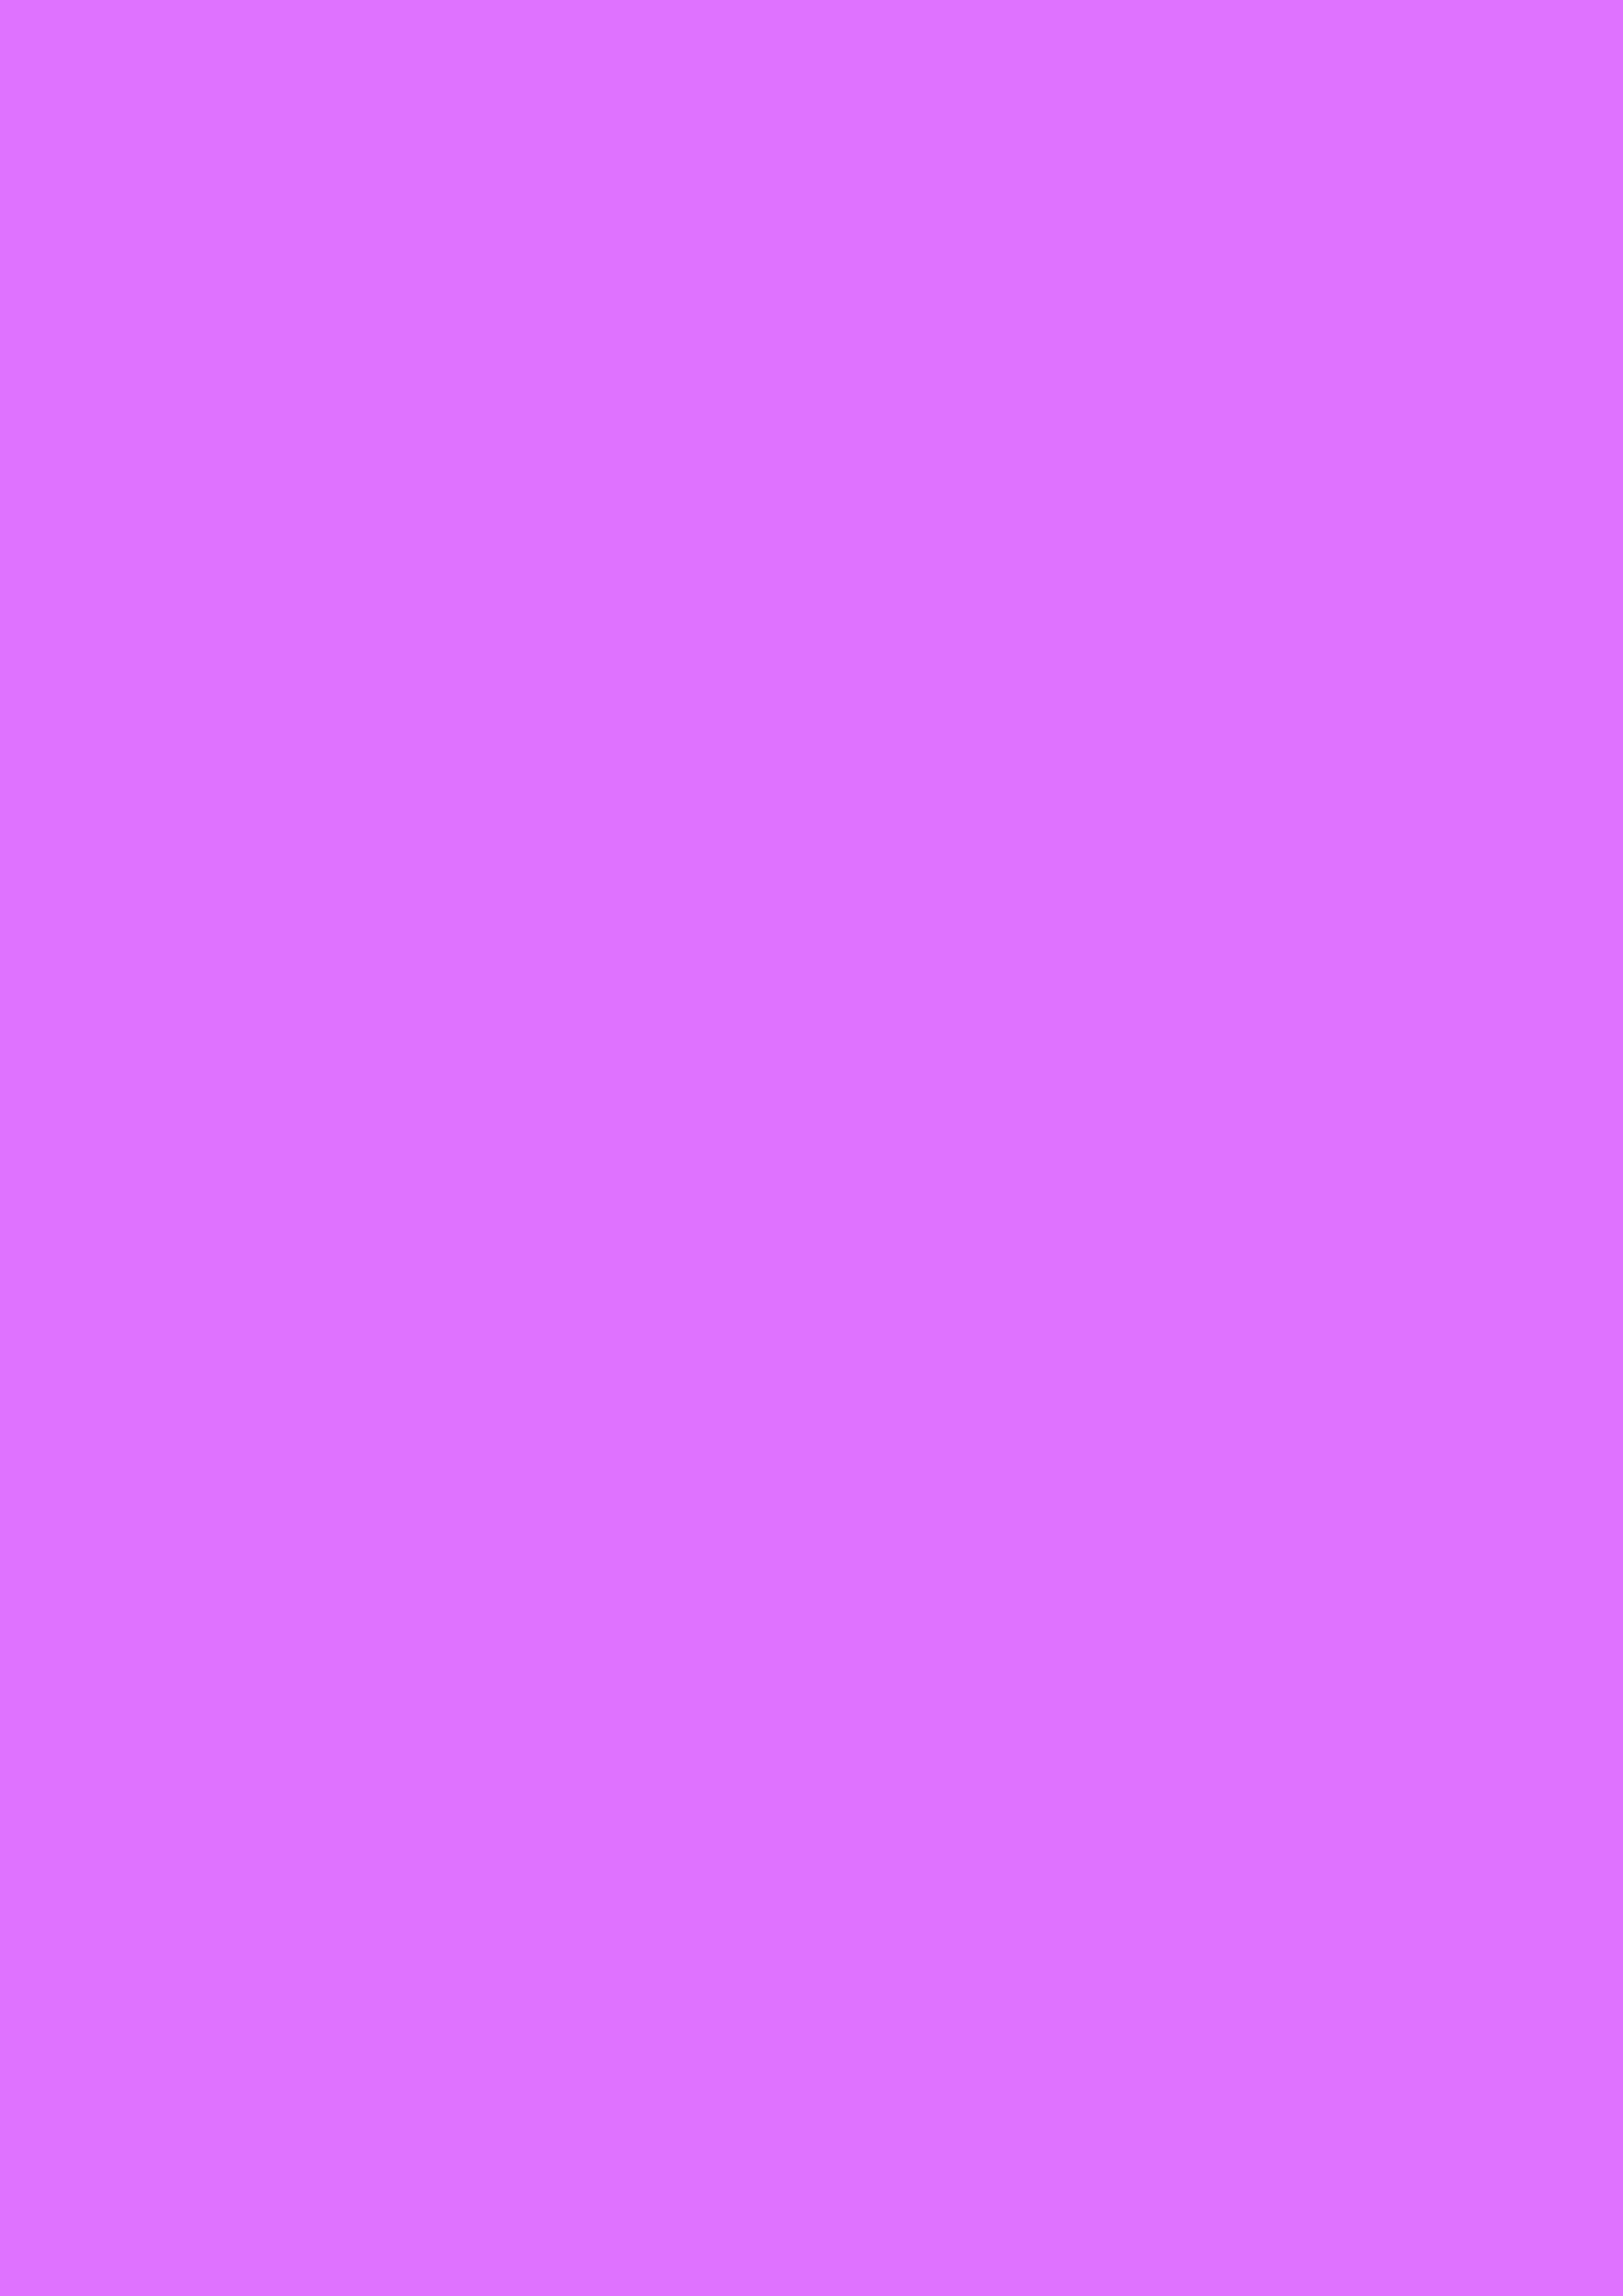 2480x3508 Heliotrope Solid Color Background